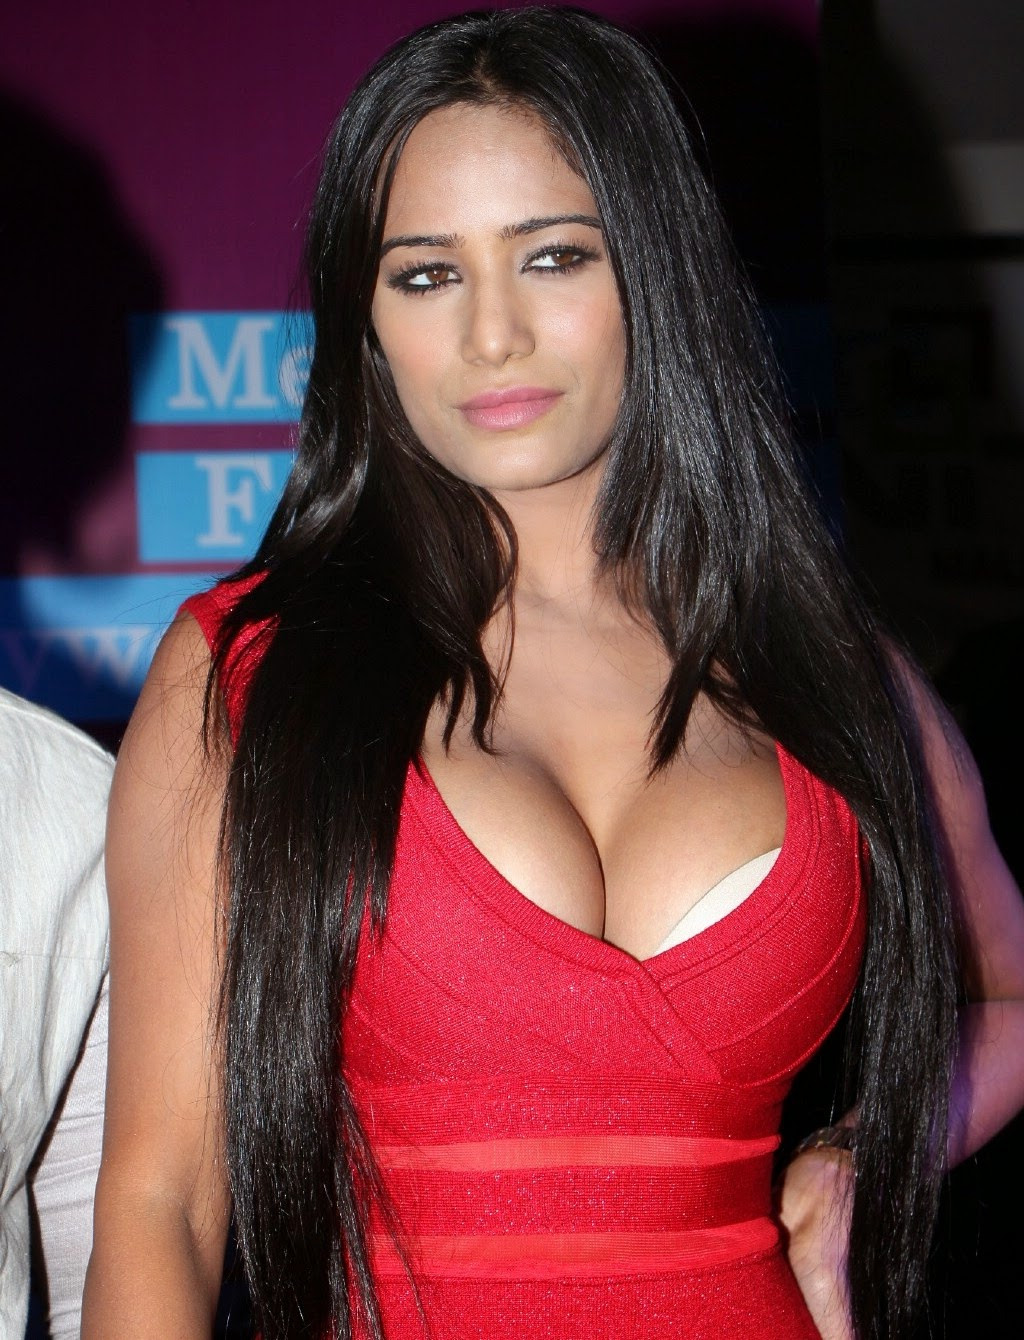 Poonam Pandey nudes (93 pictures) Gallery, Facebook, swimsuit